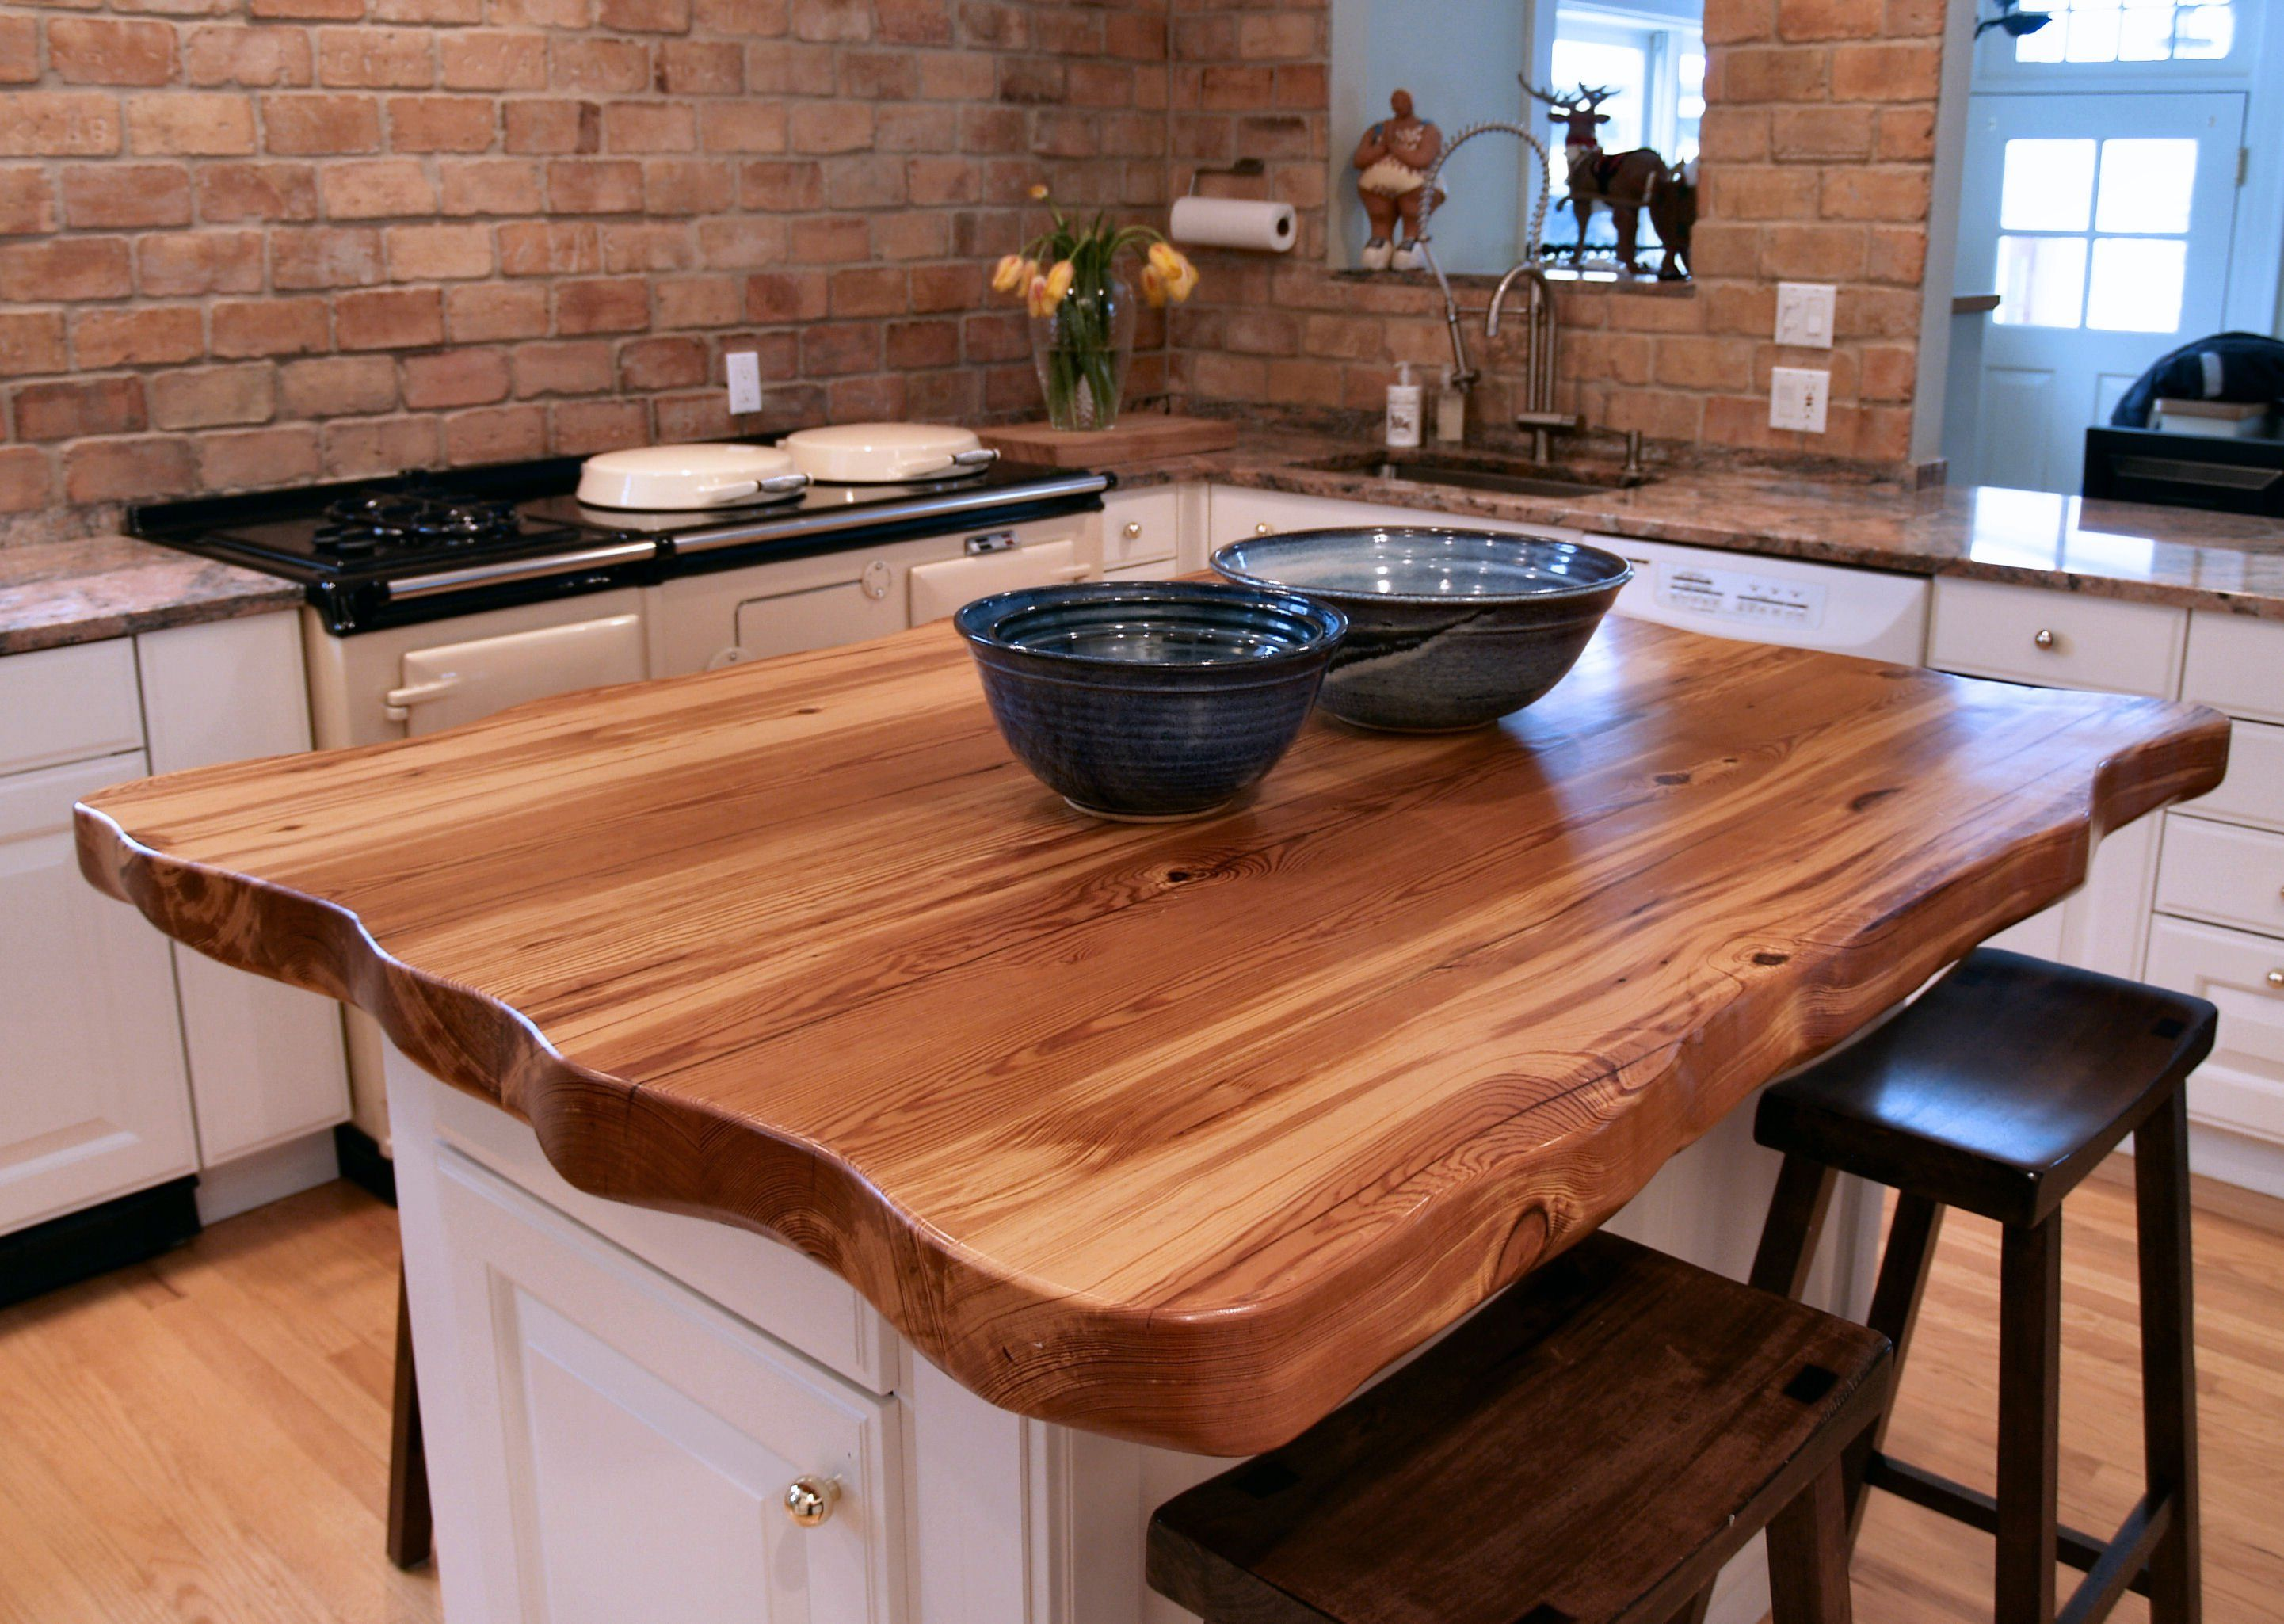 edge countertops logs wet this slabs handles bars rustic natural pin cool live and wood hickory cedar log custom